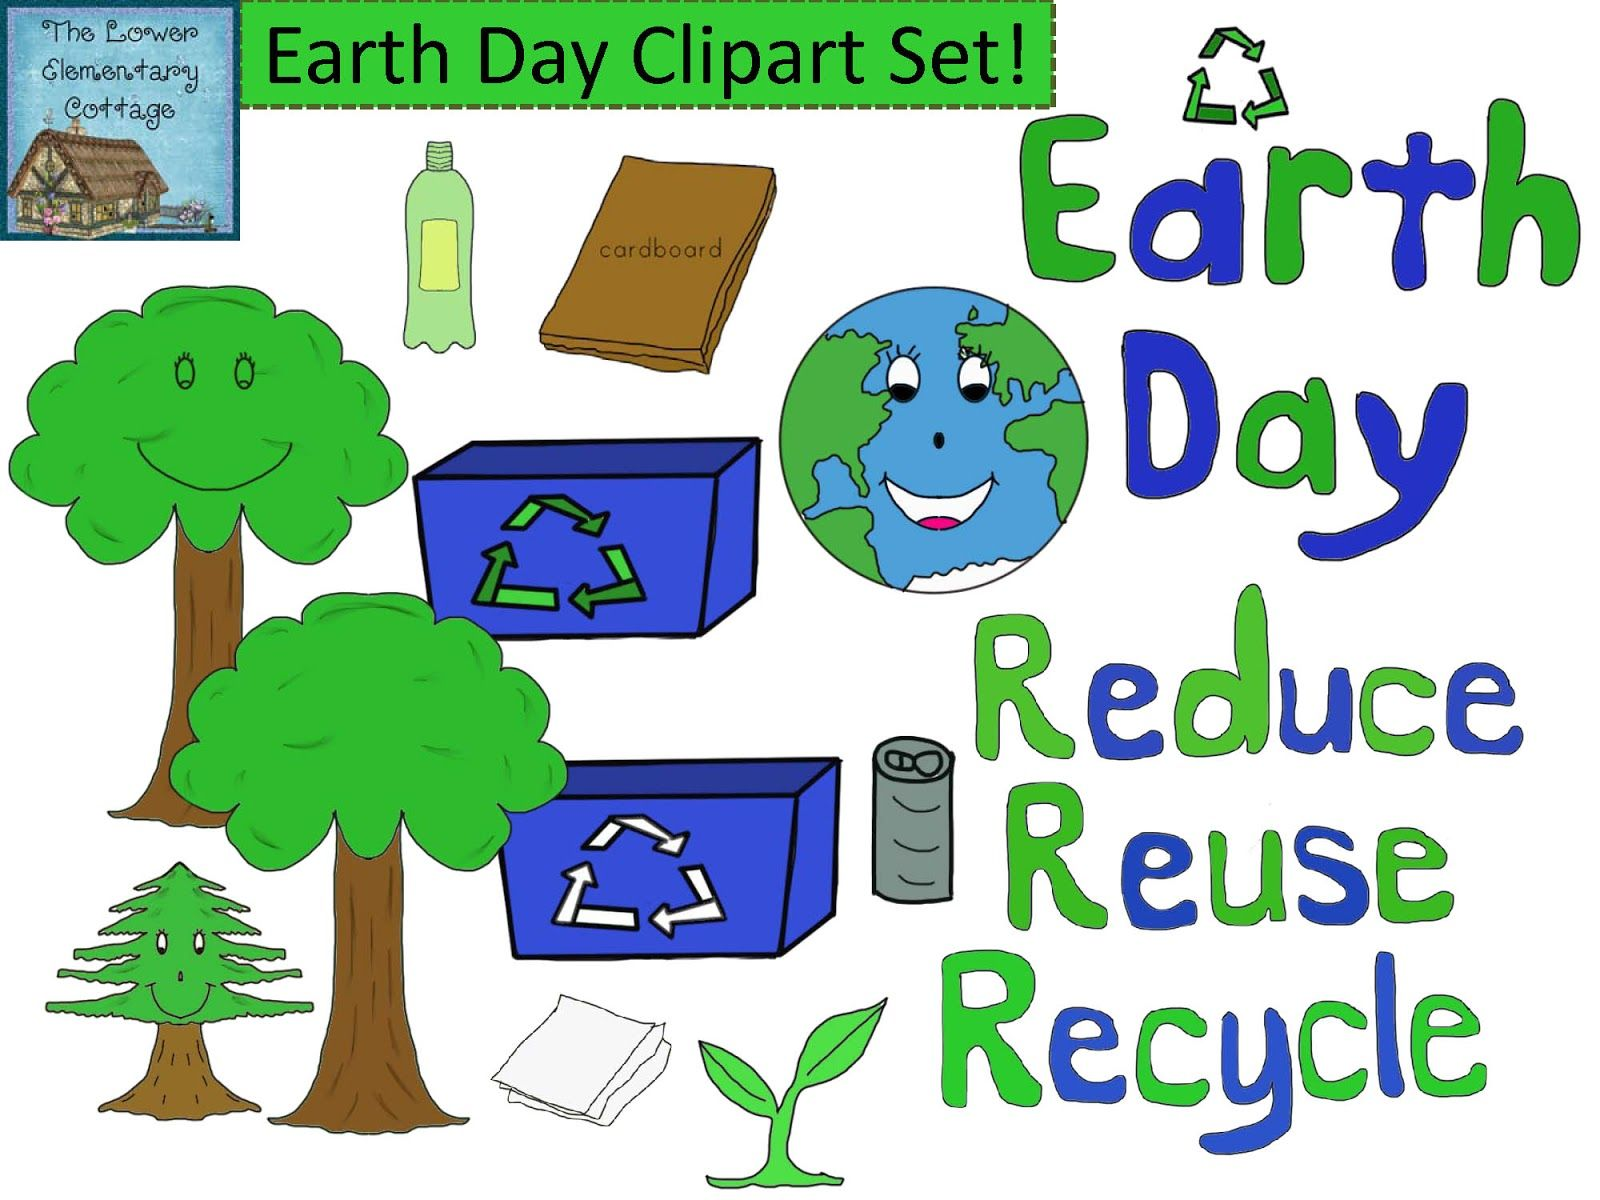 NEW Earth Day Clipart! Giveaway Reminder! | Earth Day | Pinterest ...